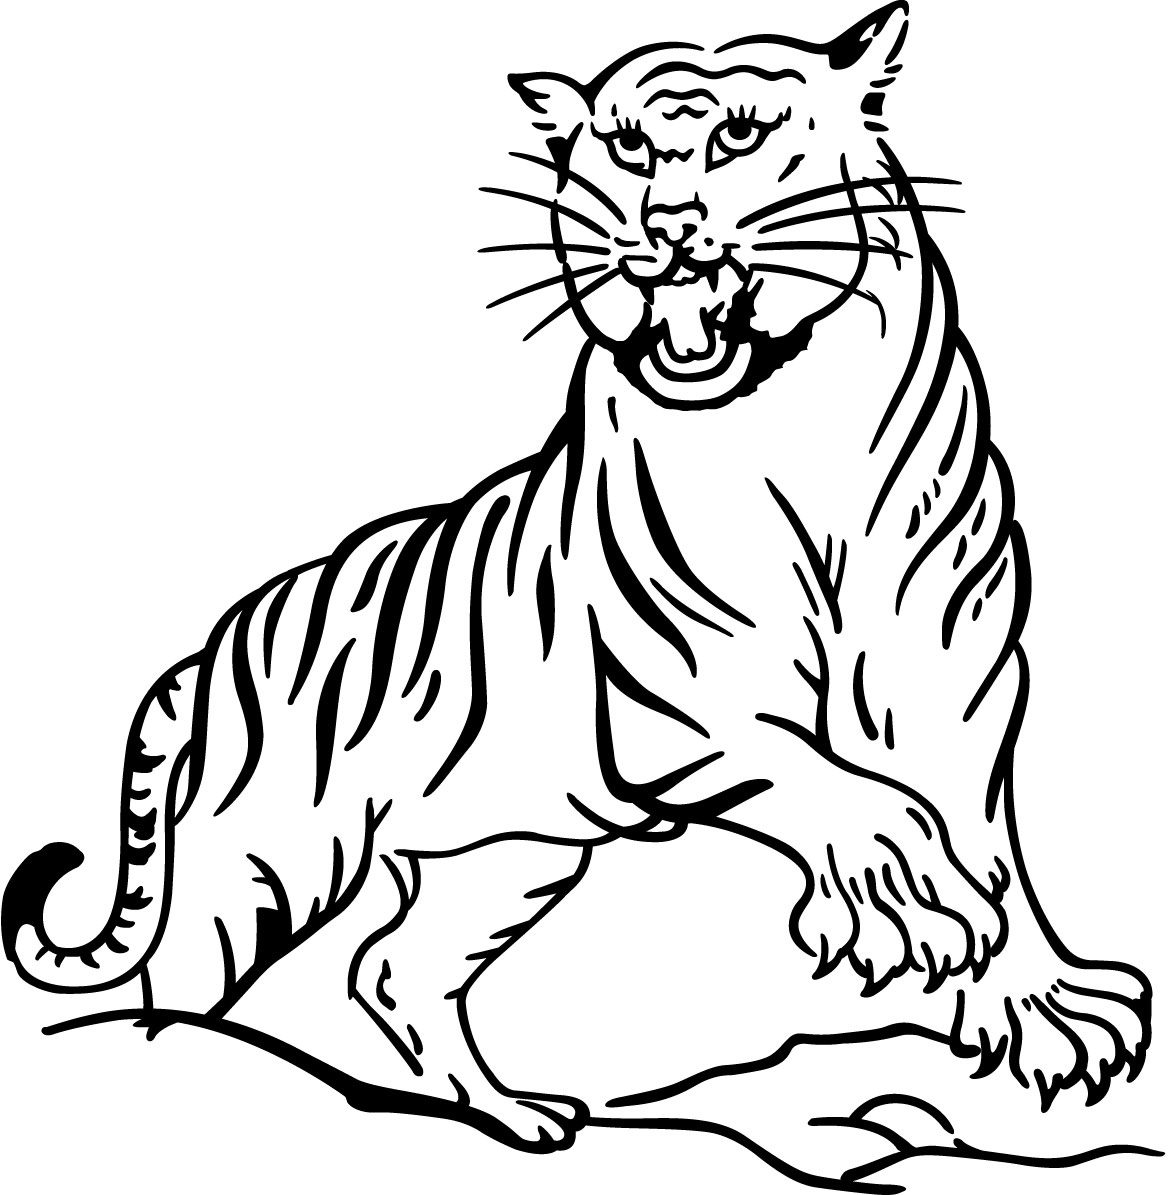 tiger coloring book pages free printable tiger coloring pages for kids coloring pages book tiger